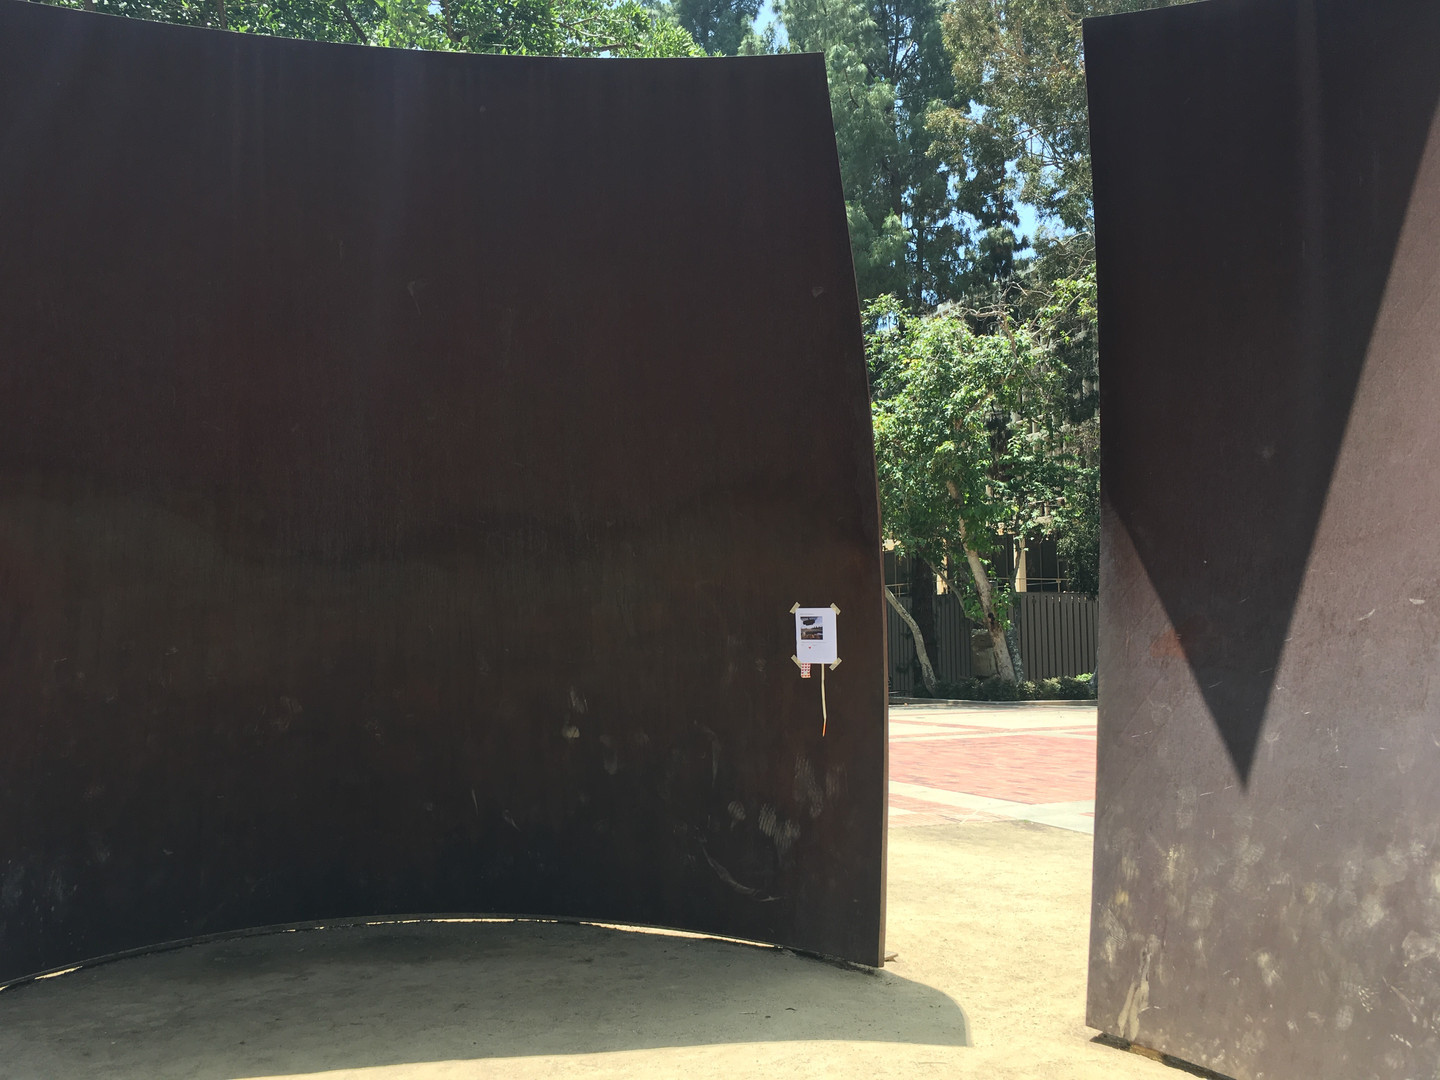 On a Richard Serra sculpture